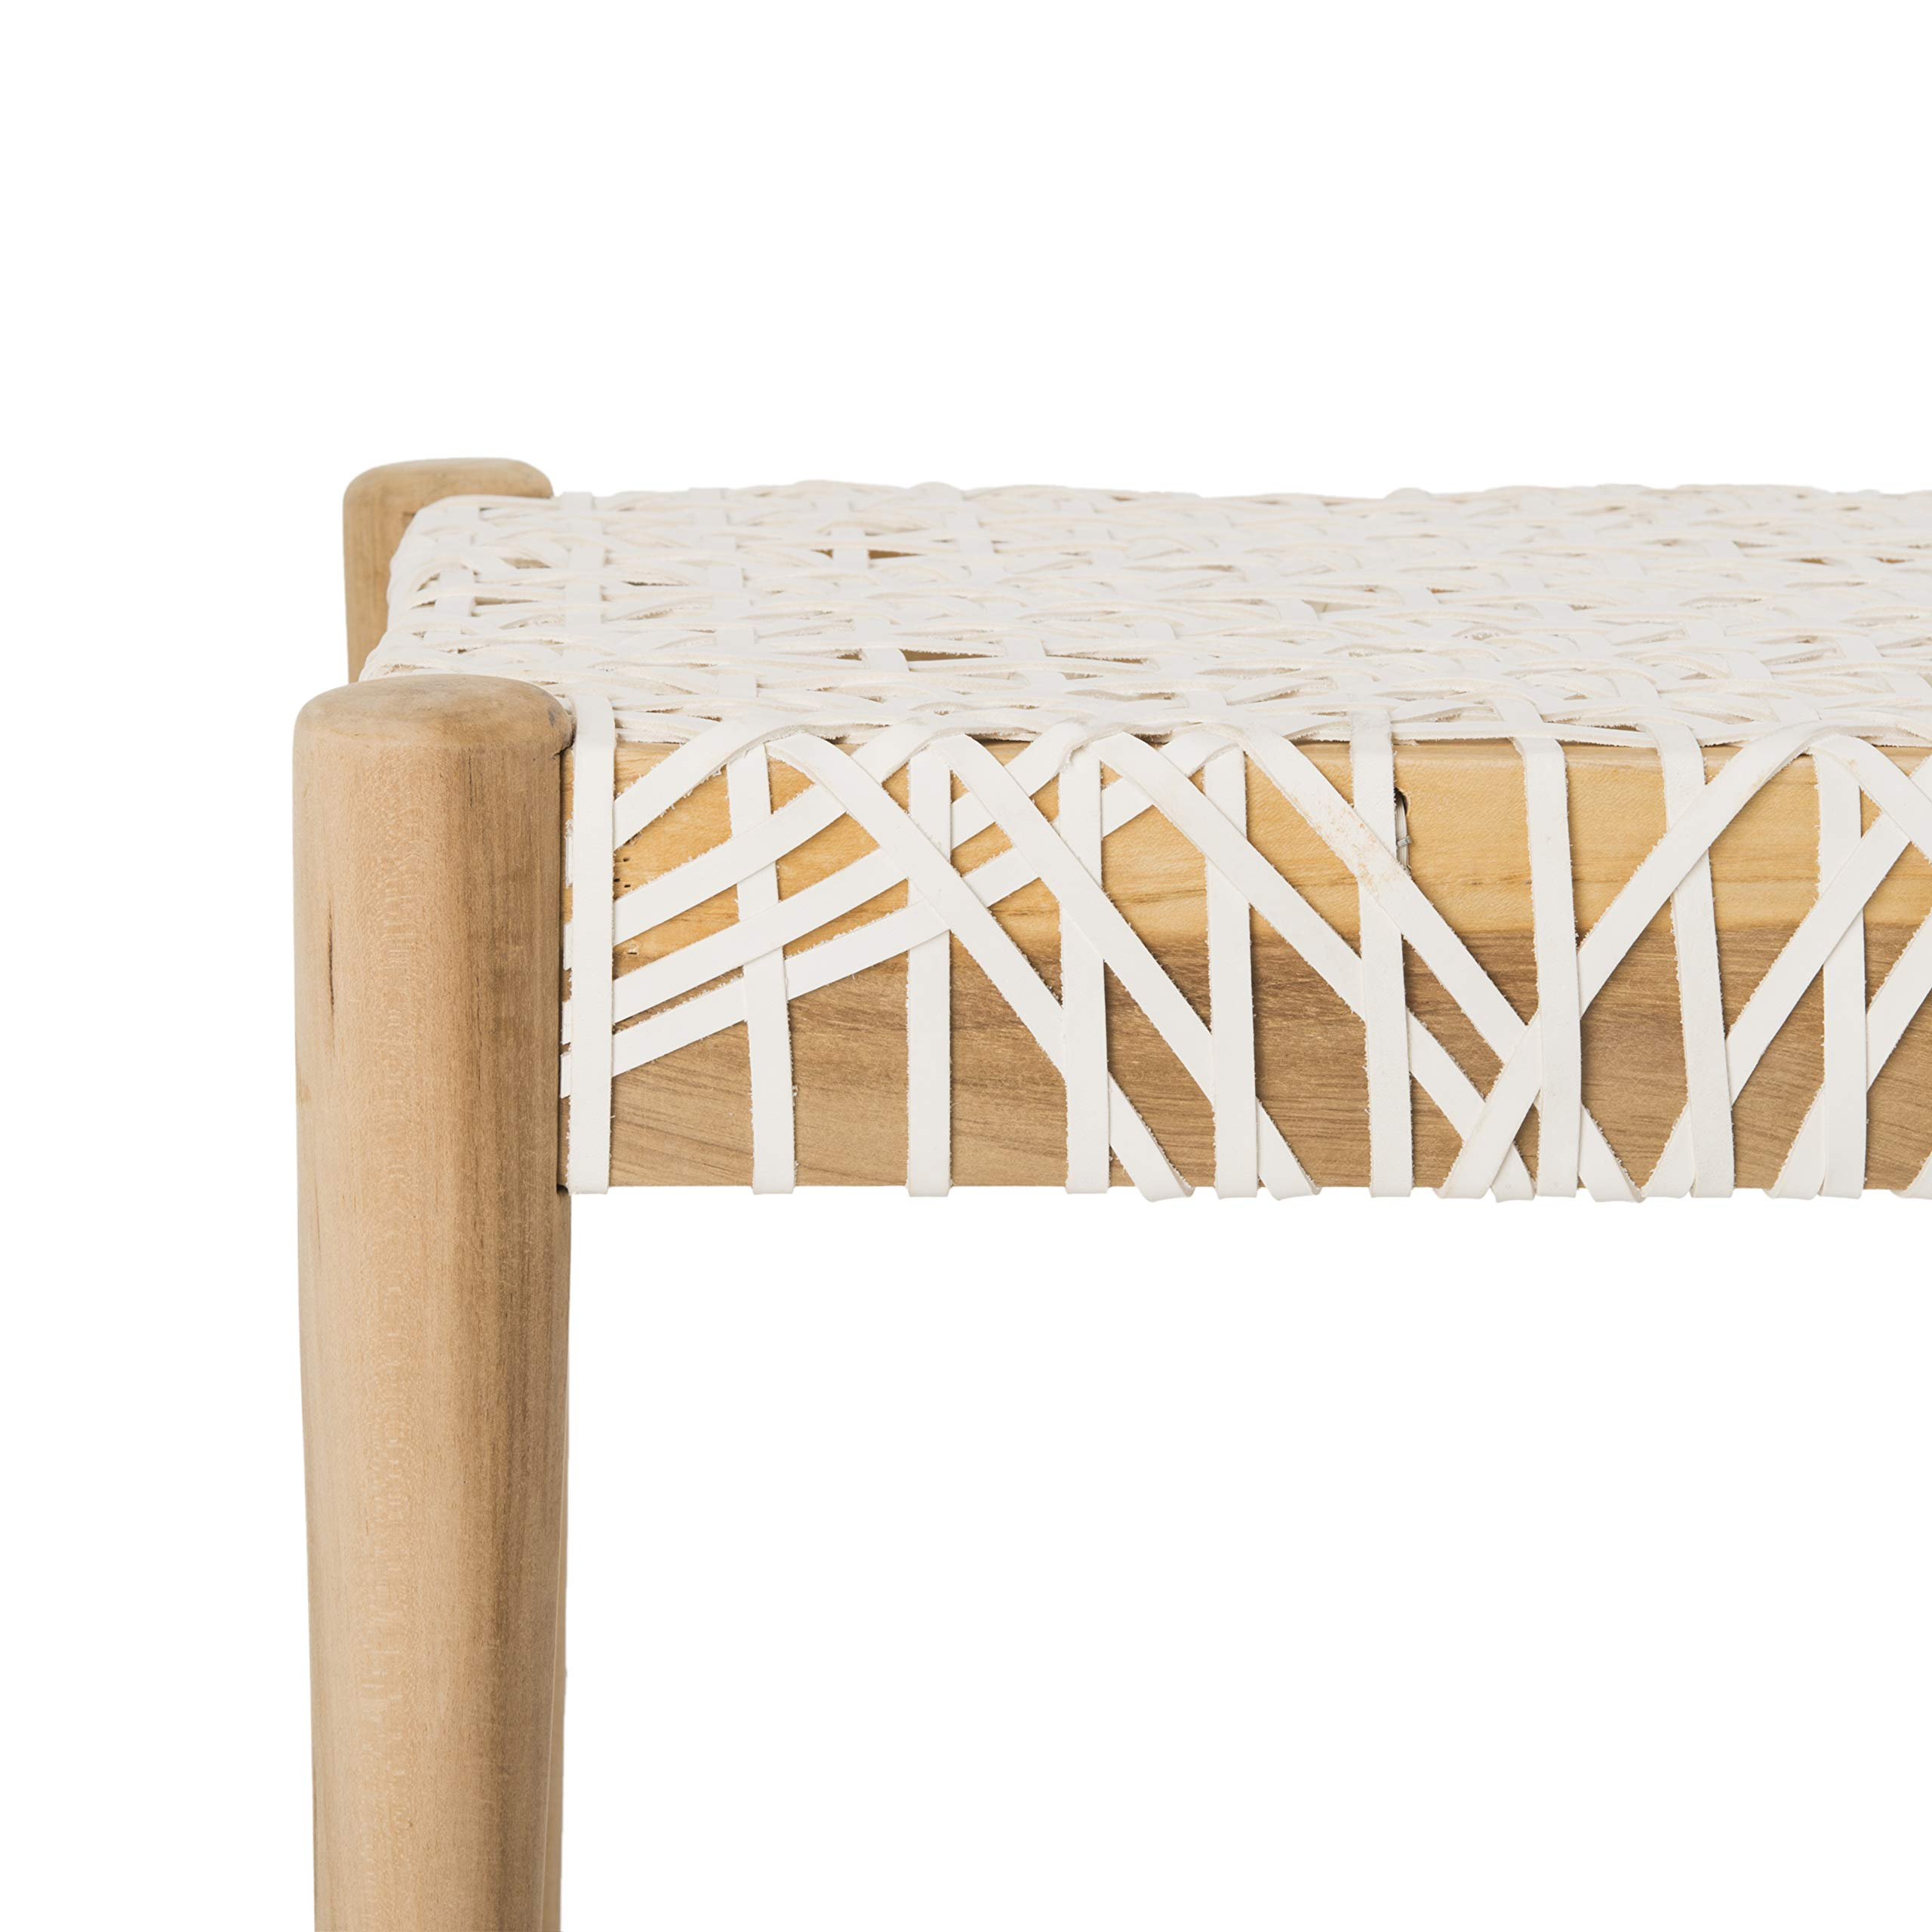 Safavieh BCH1000A Home Collection Bandelier Bench, Off- Off-White/Natural by Safavieh (Image #2)